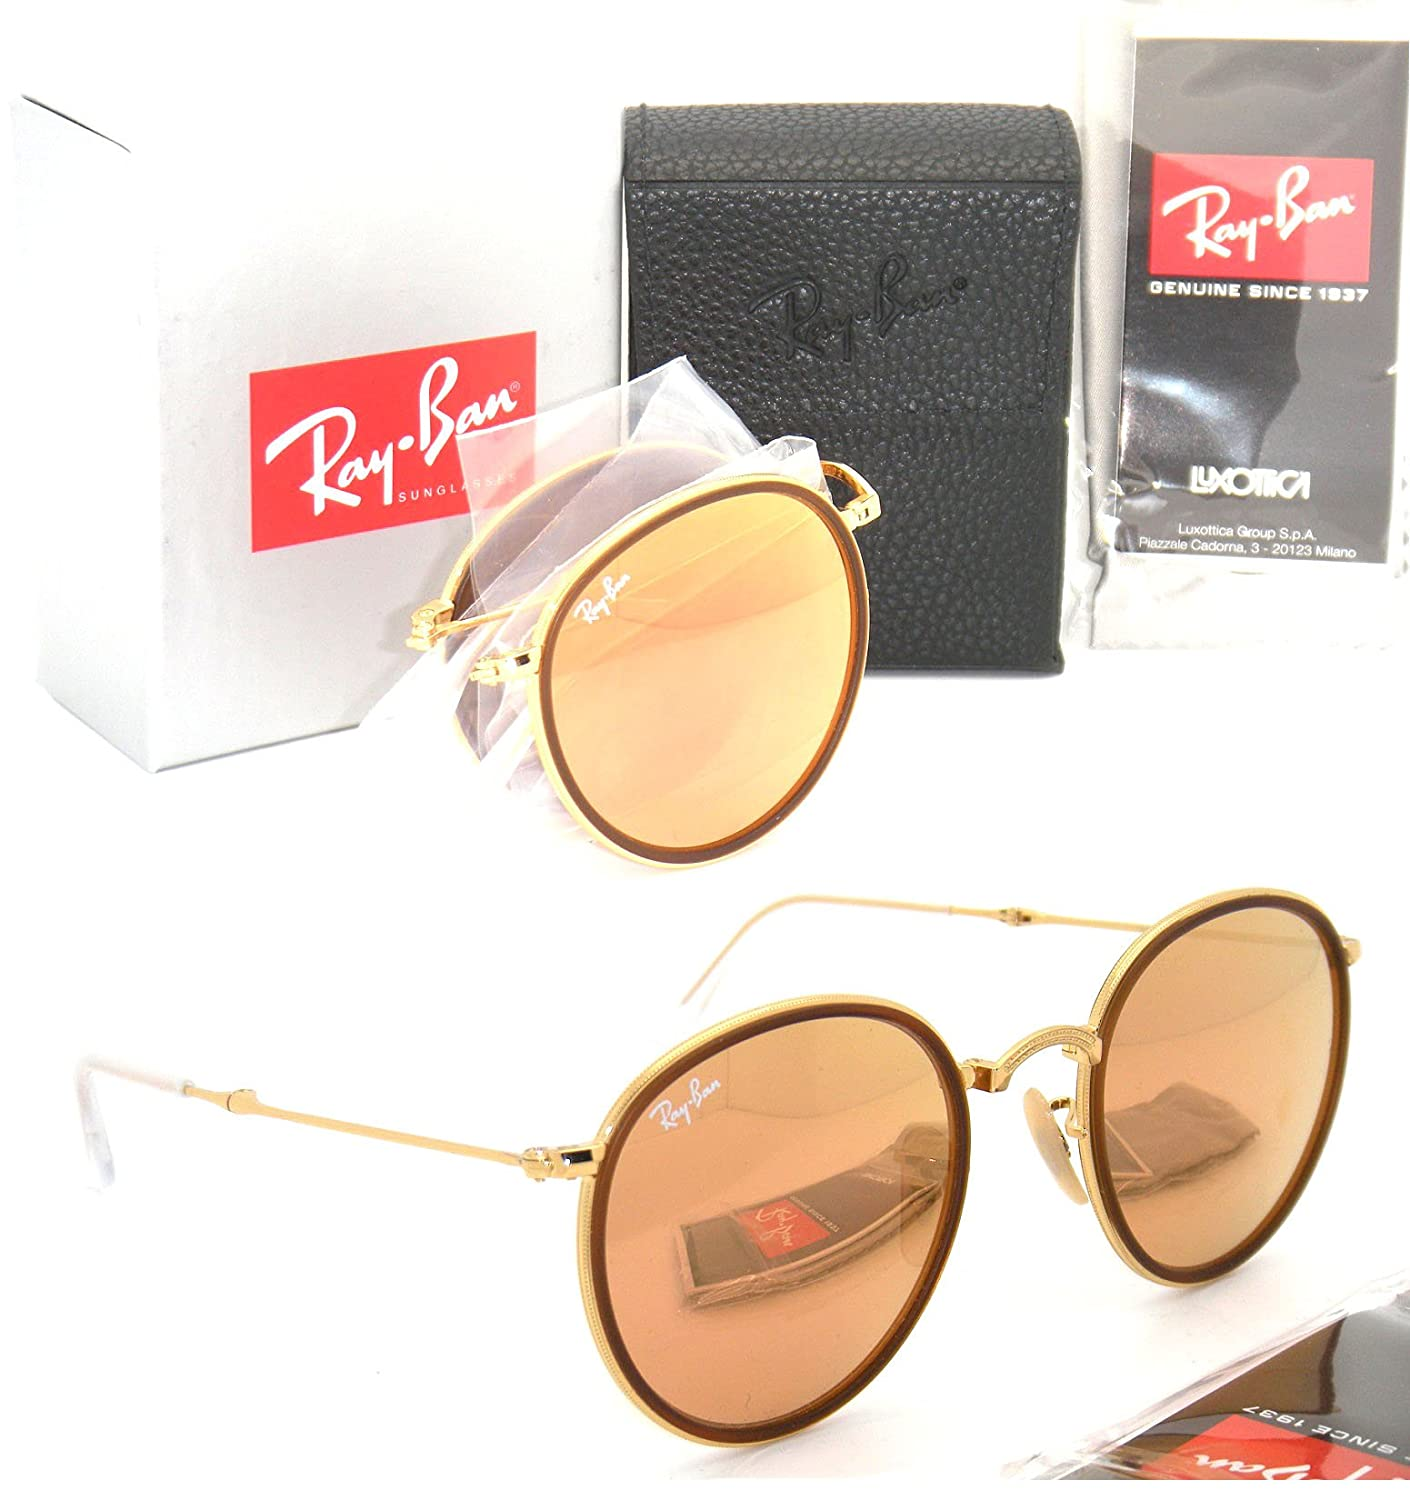 Ray Ban Glasses Frames Melbourne : Ray Ban Sunglasses Price Melbourne Puyallup, Washington